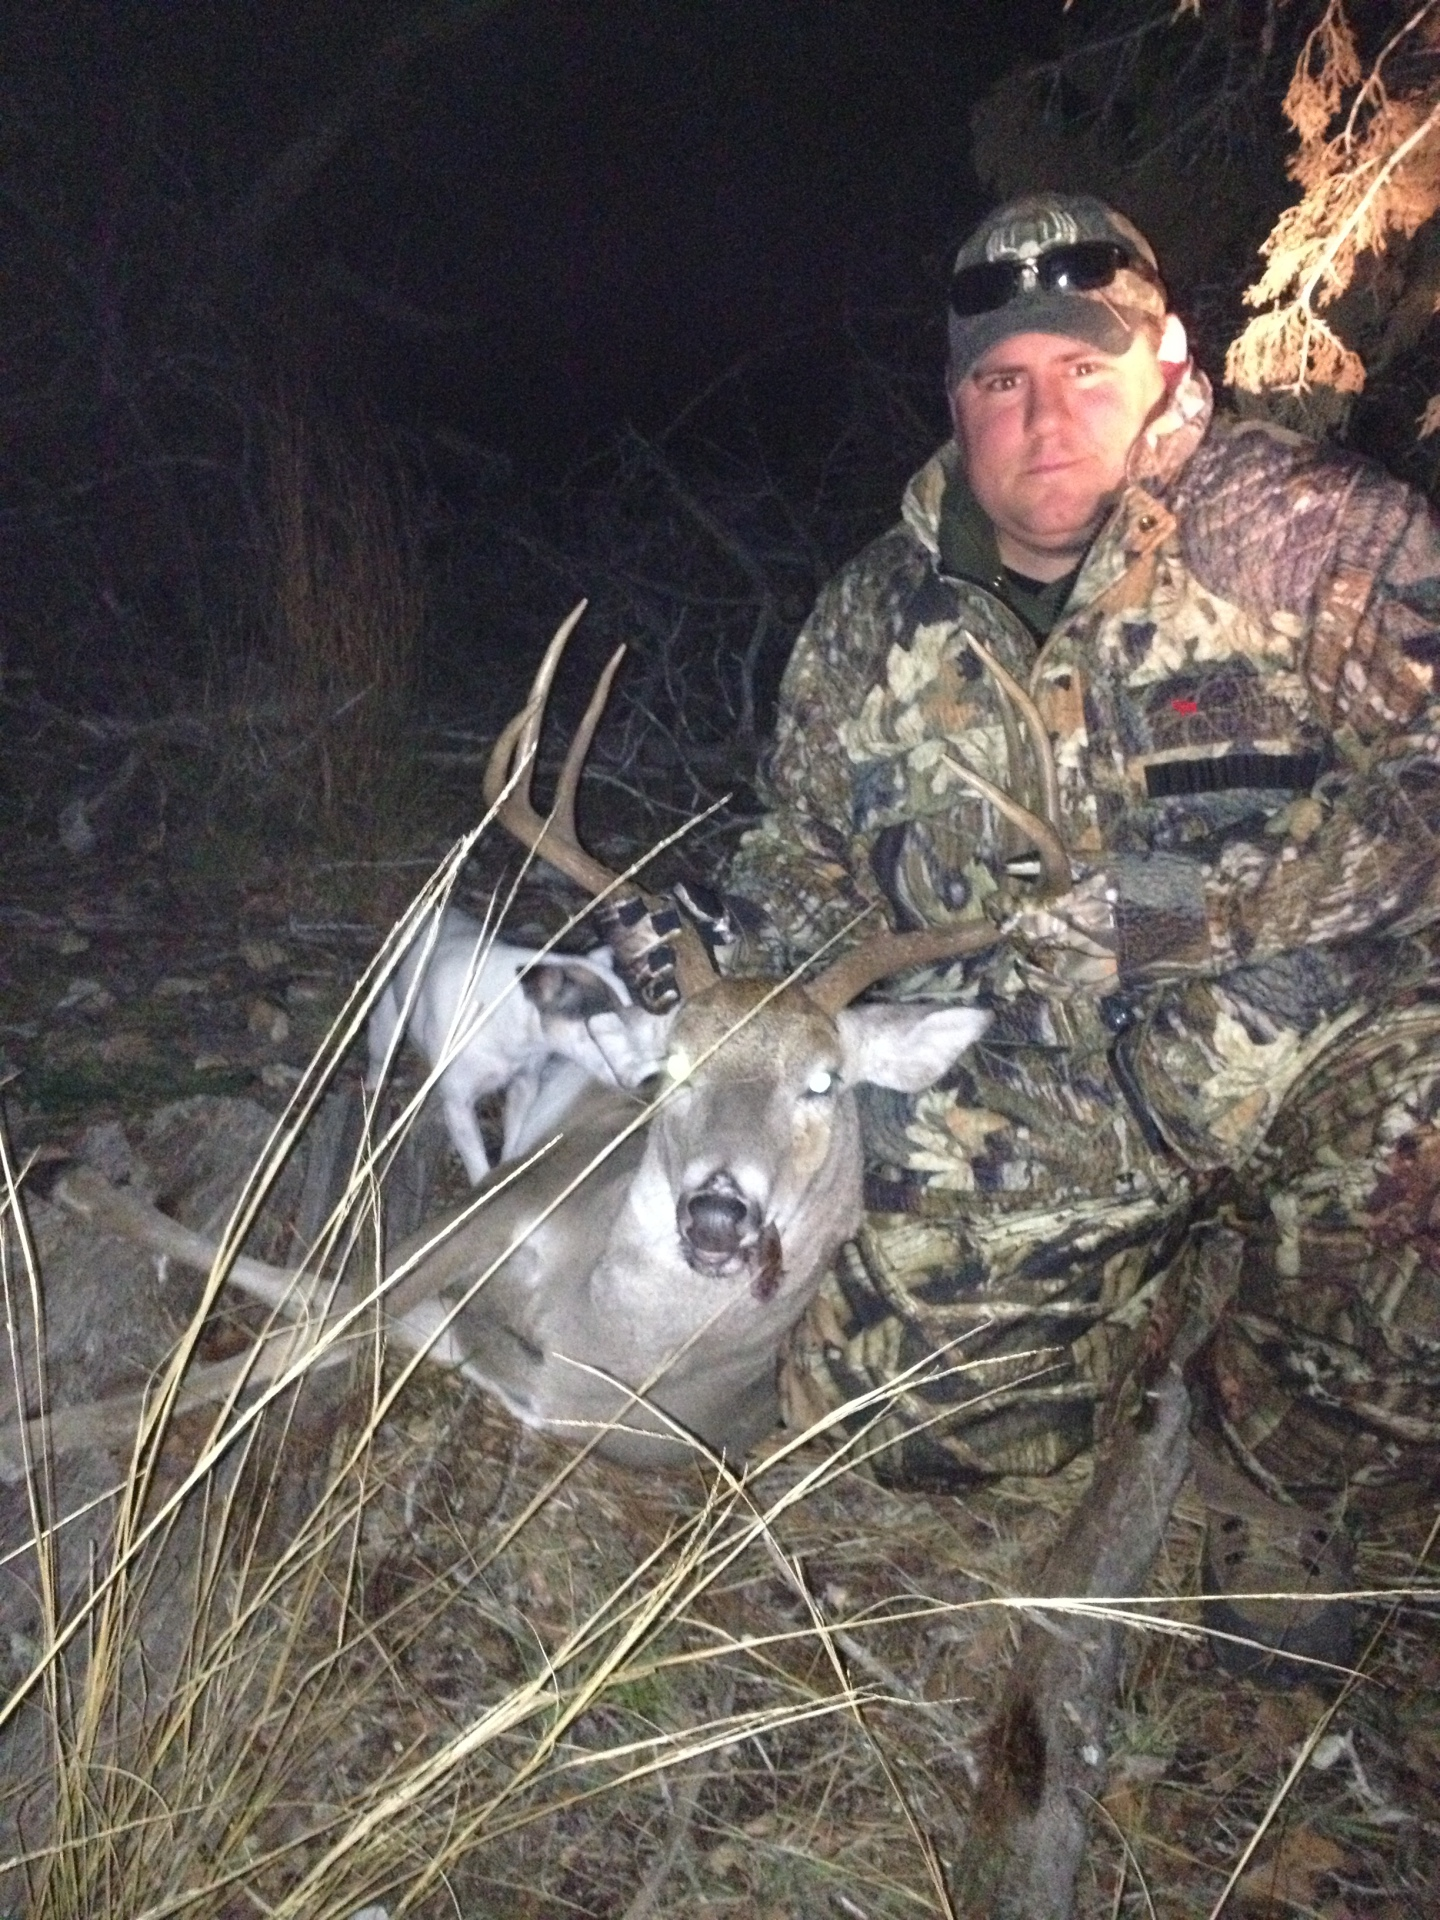 Texans Outdoors, deer hunting, Texans, Outdoors, Texans Outdoors, Texas